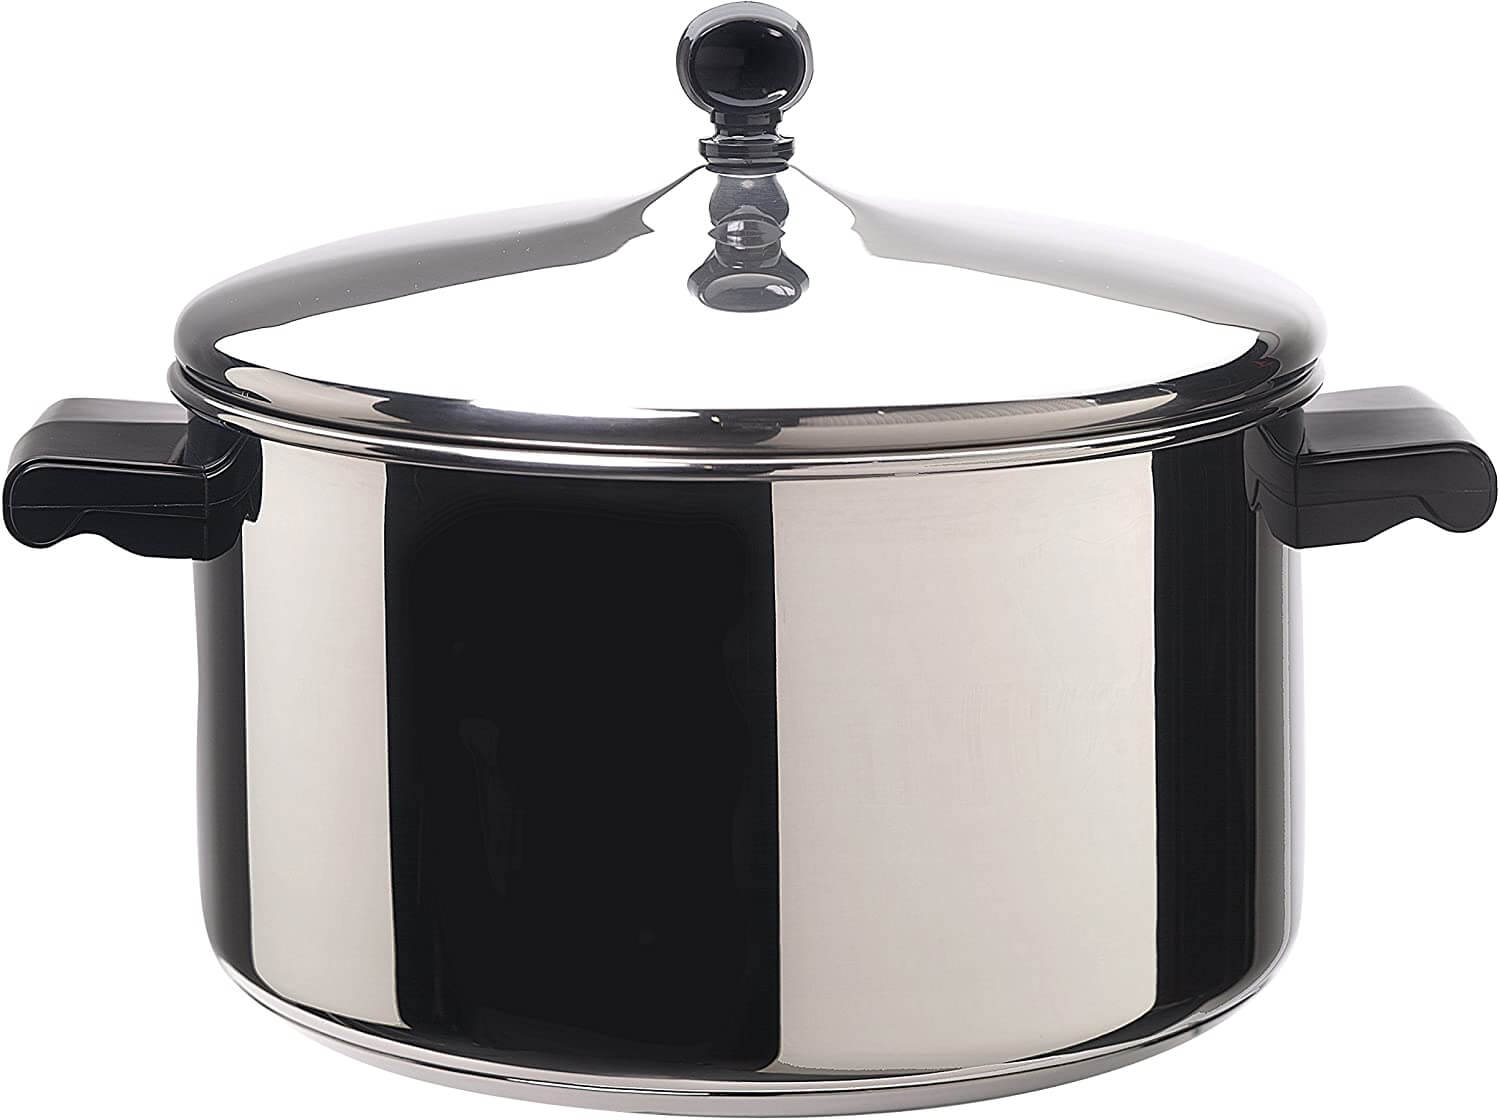 Farberware 50005 Classic Stainless Steel Stockpot with Lid